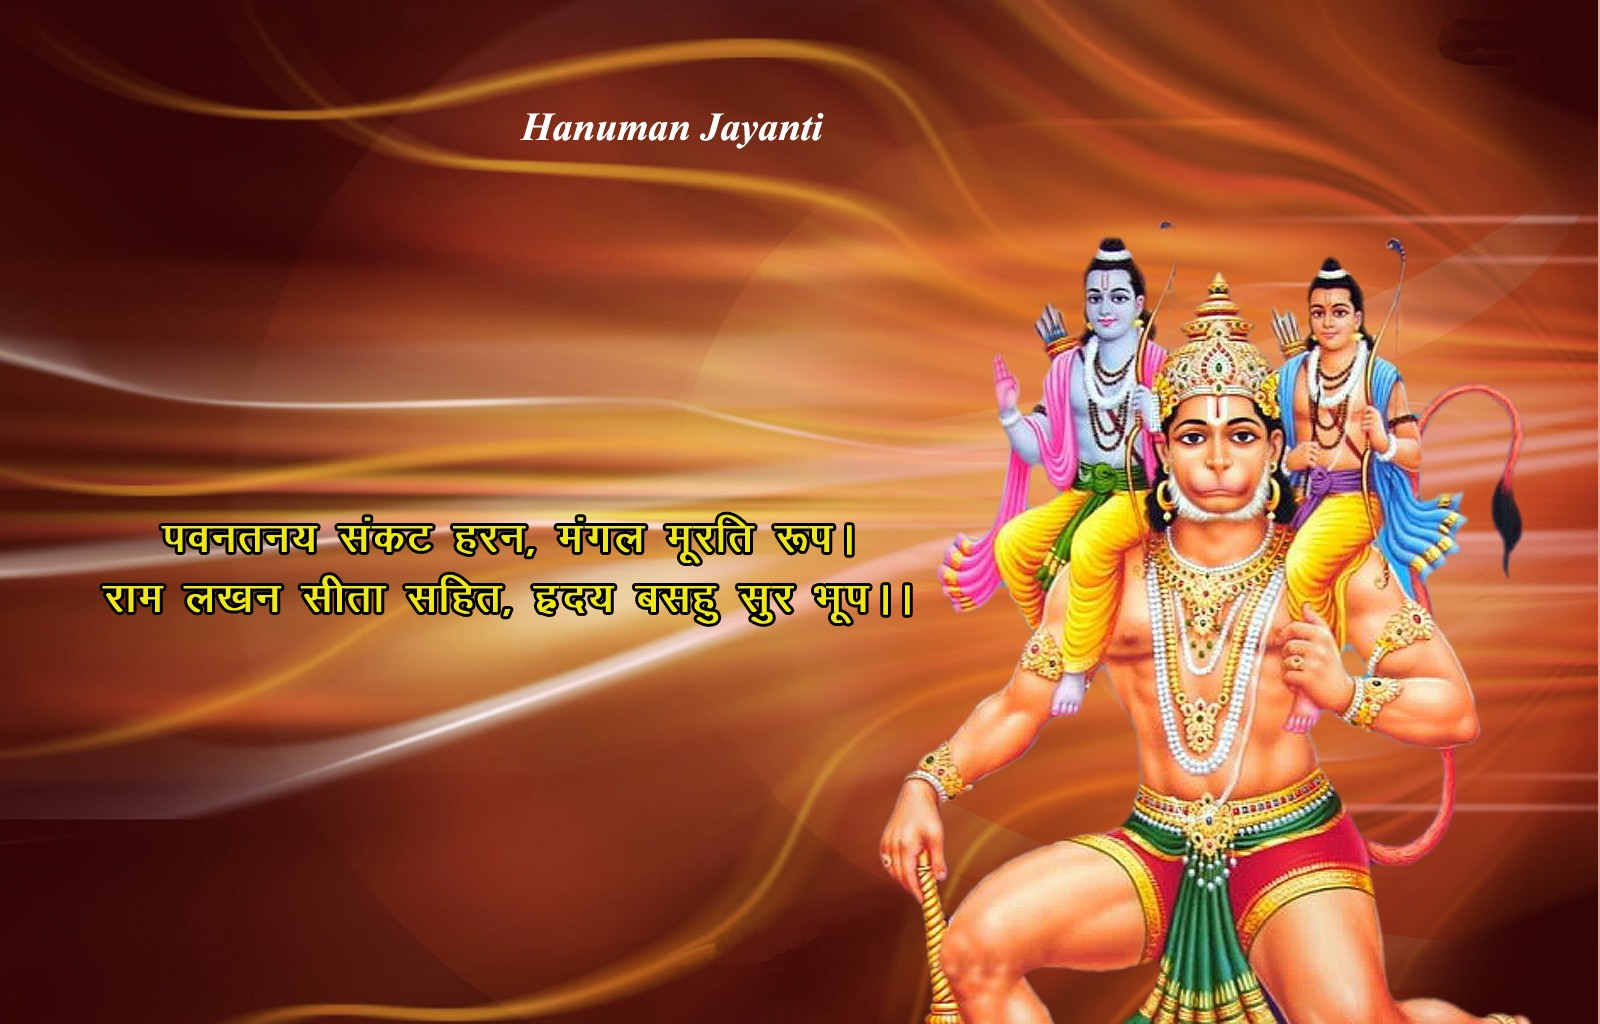 Hd wallpaper hanuman - Jai Hanuman Wallpapers Hanuman Ji Hd Images Ram Ji Photos